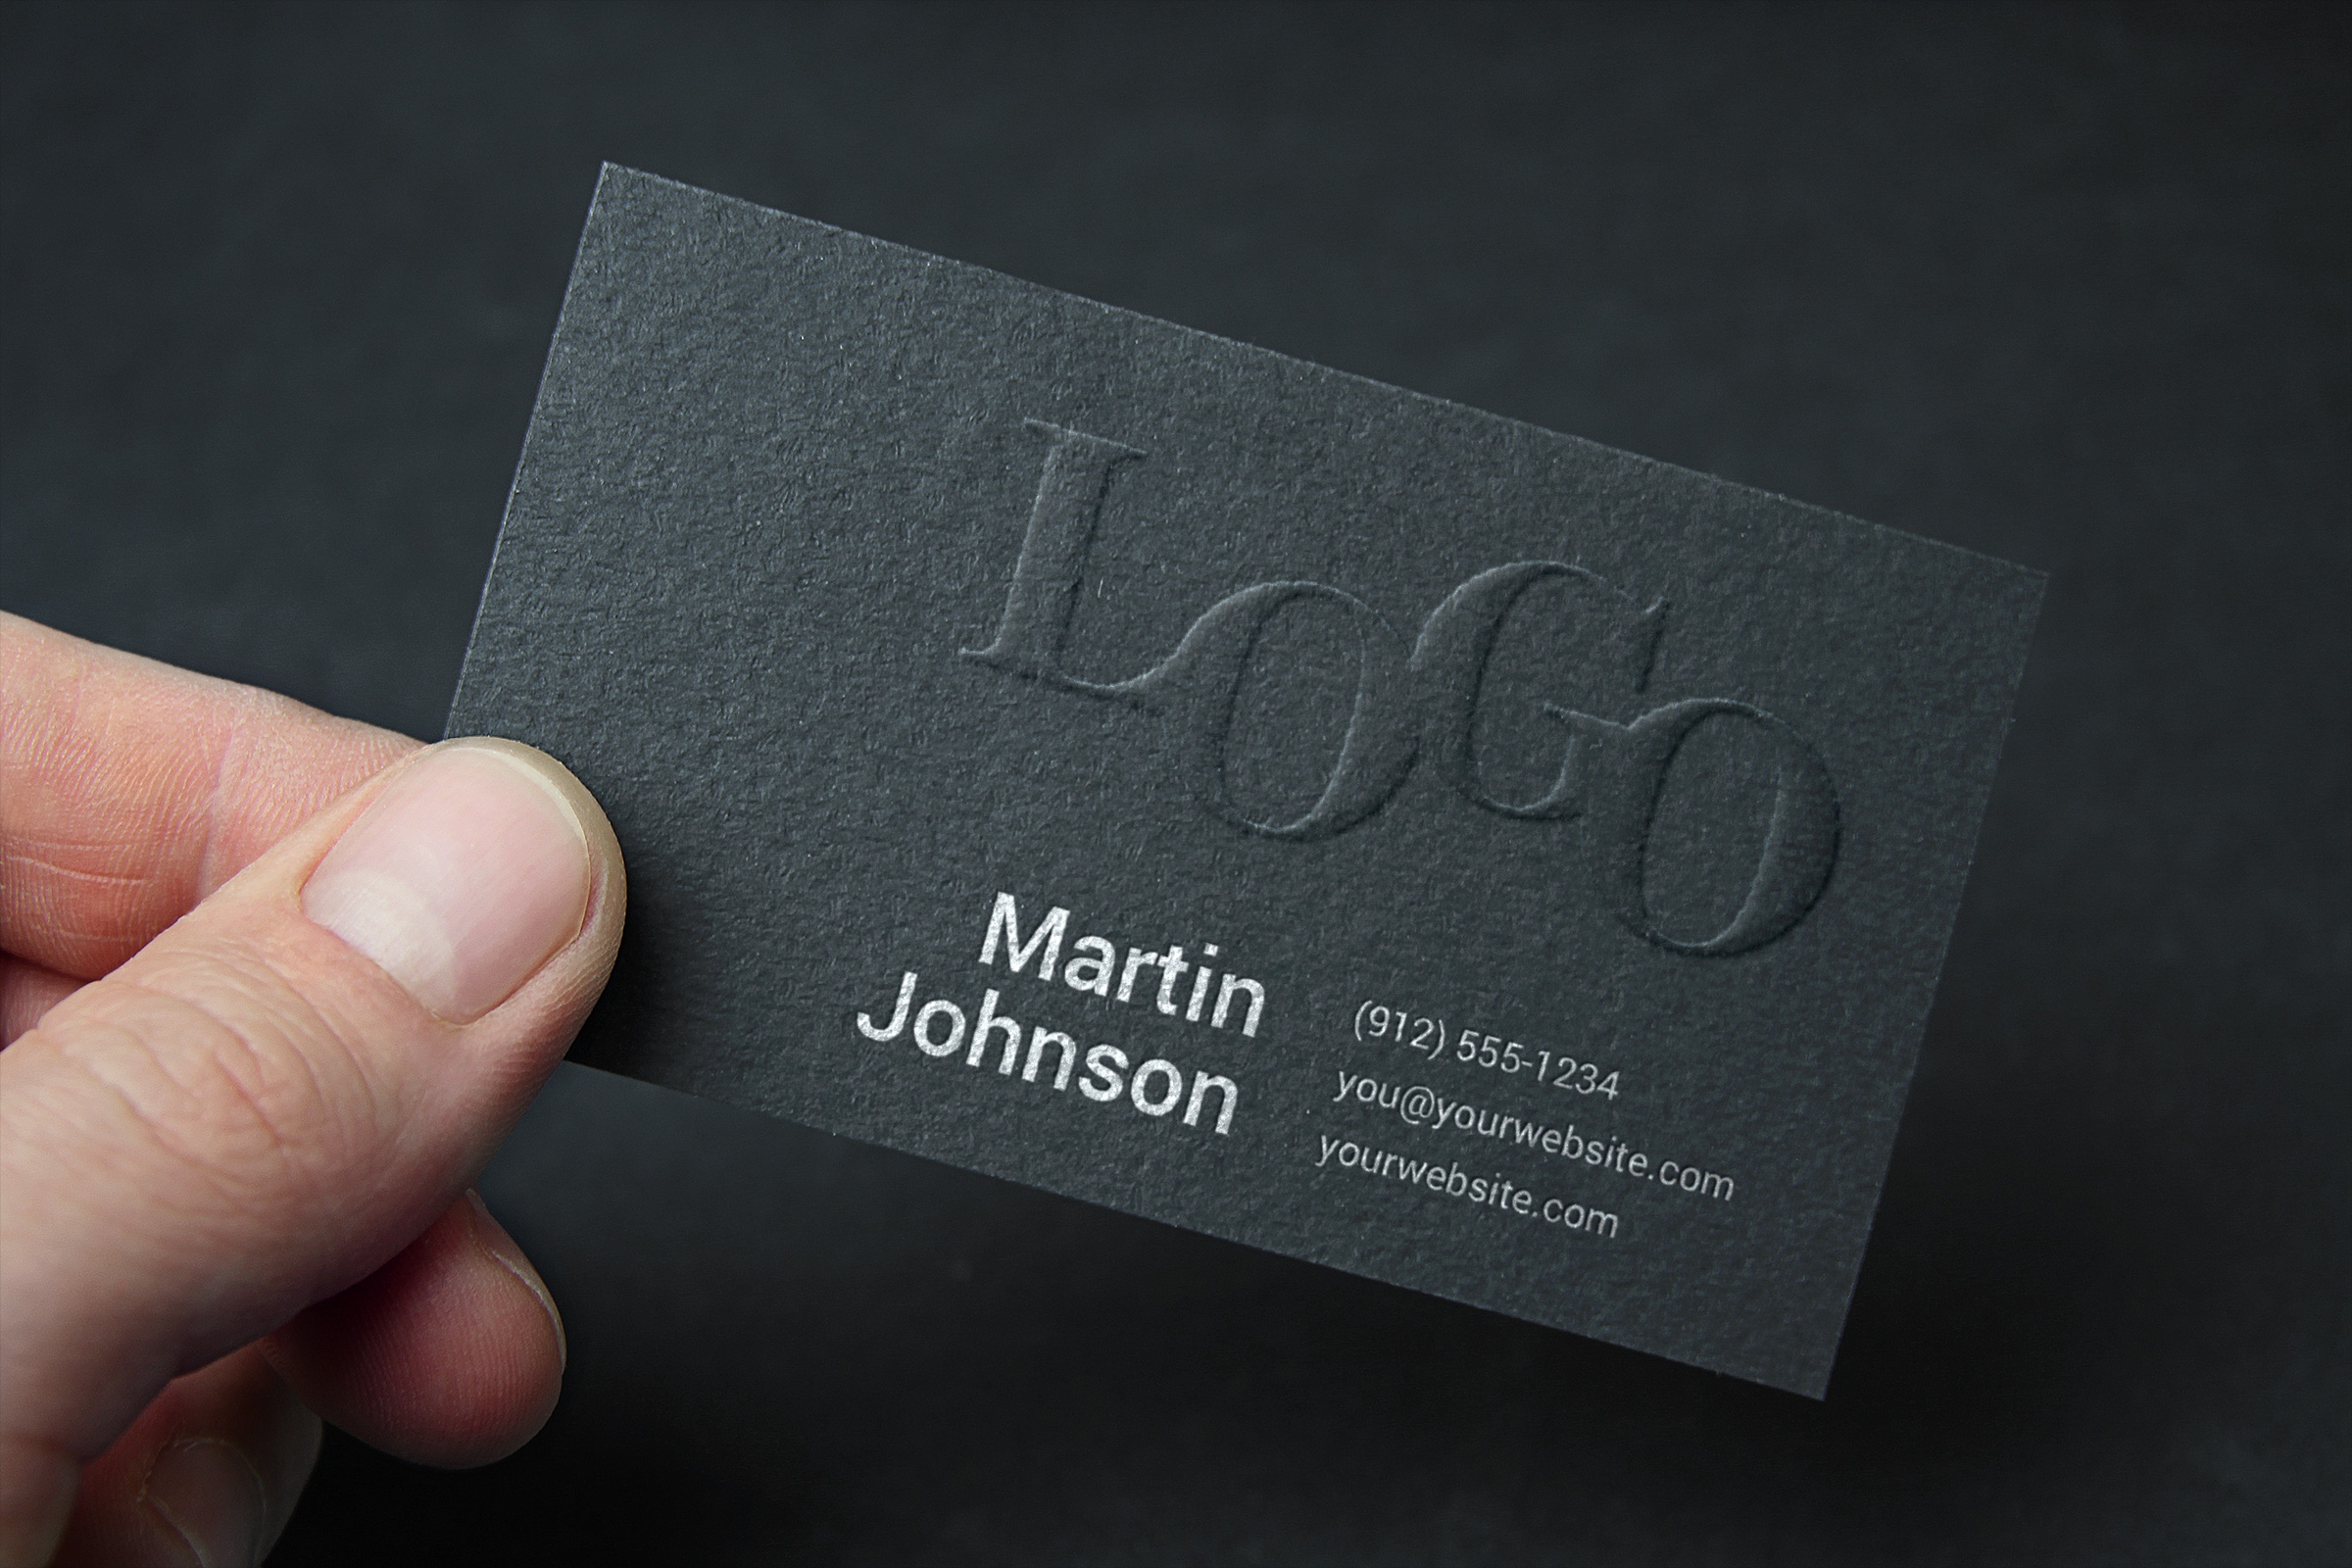 cheap business cards melbourne sydney perth brisbane adelaide